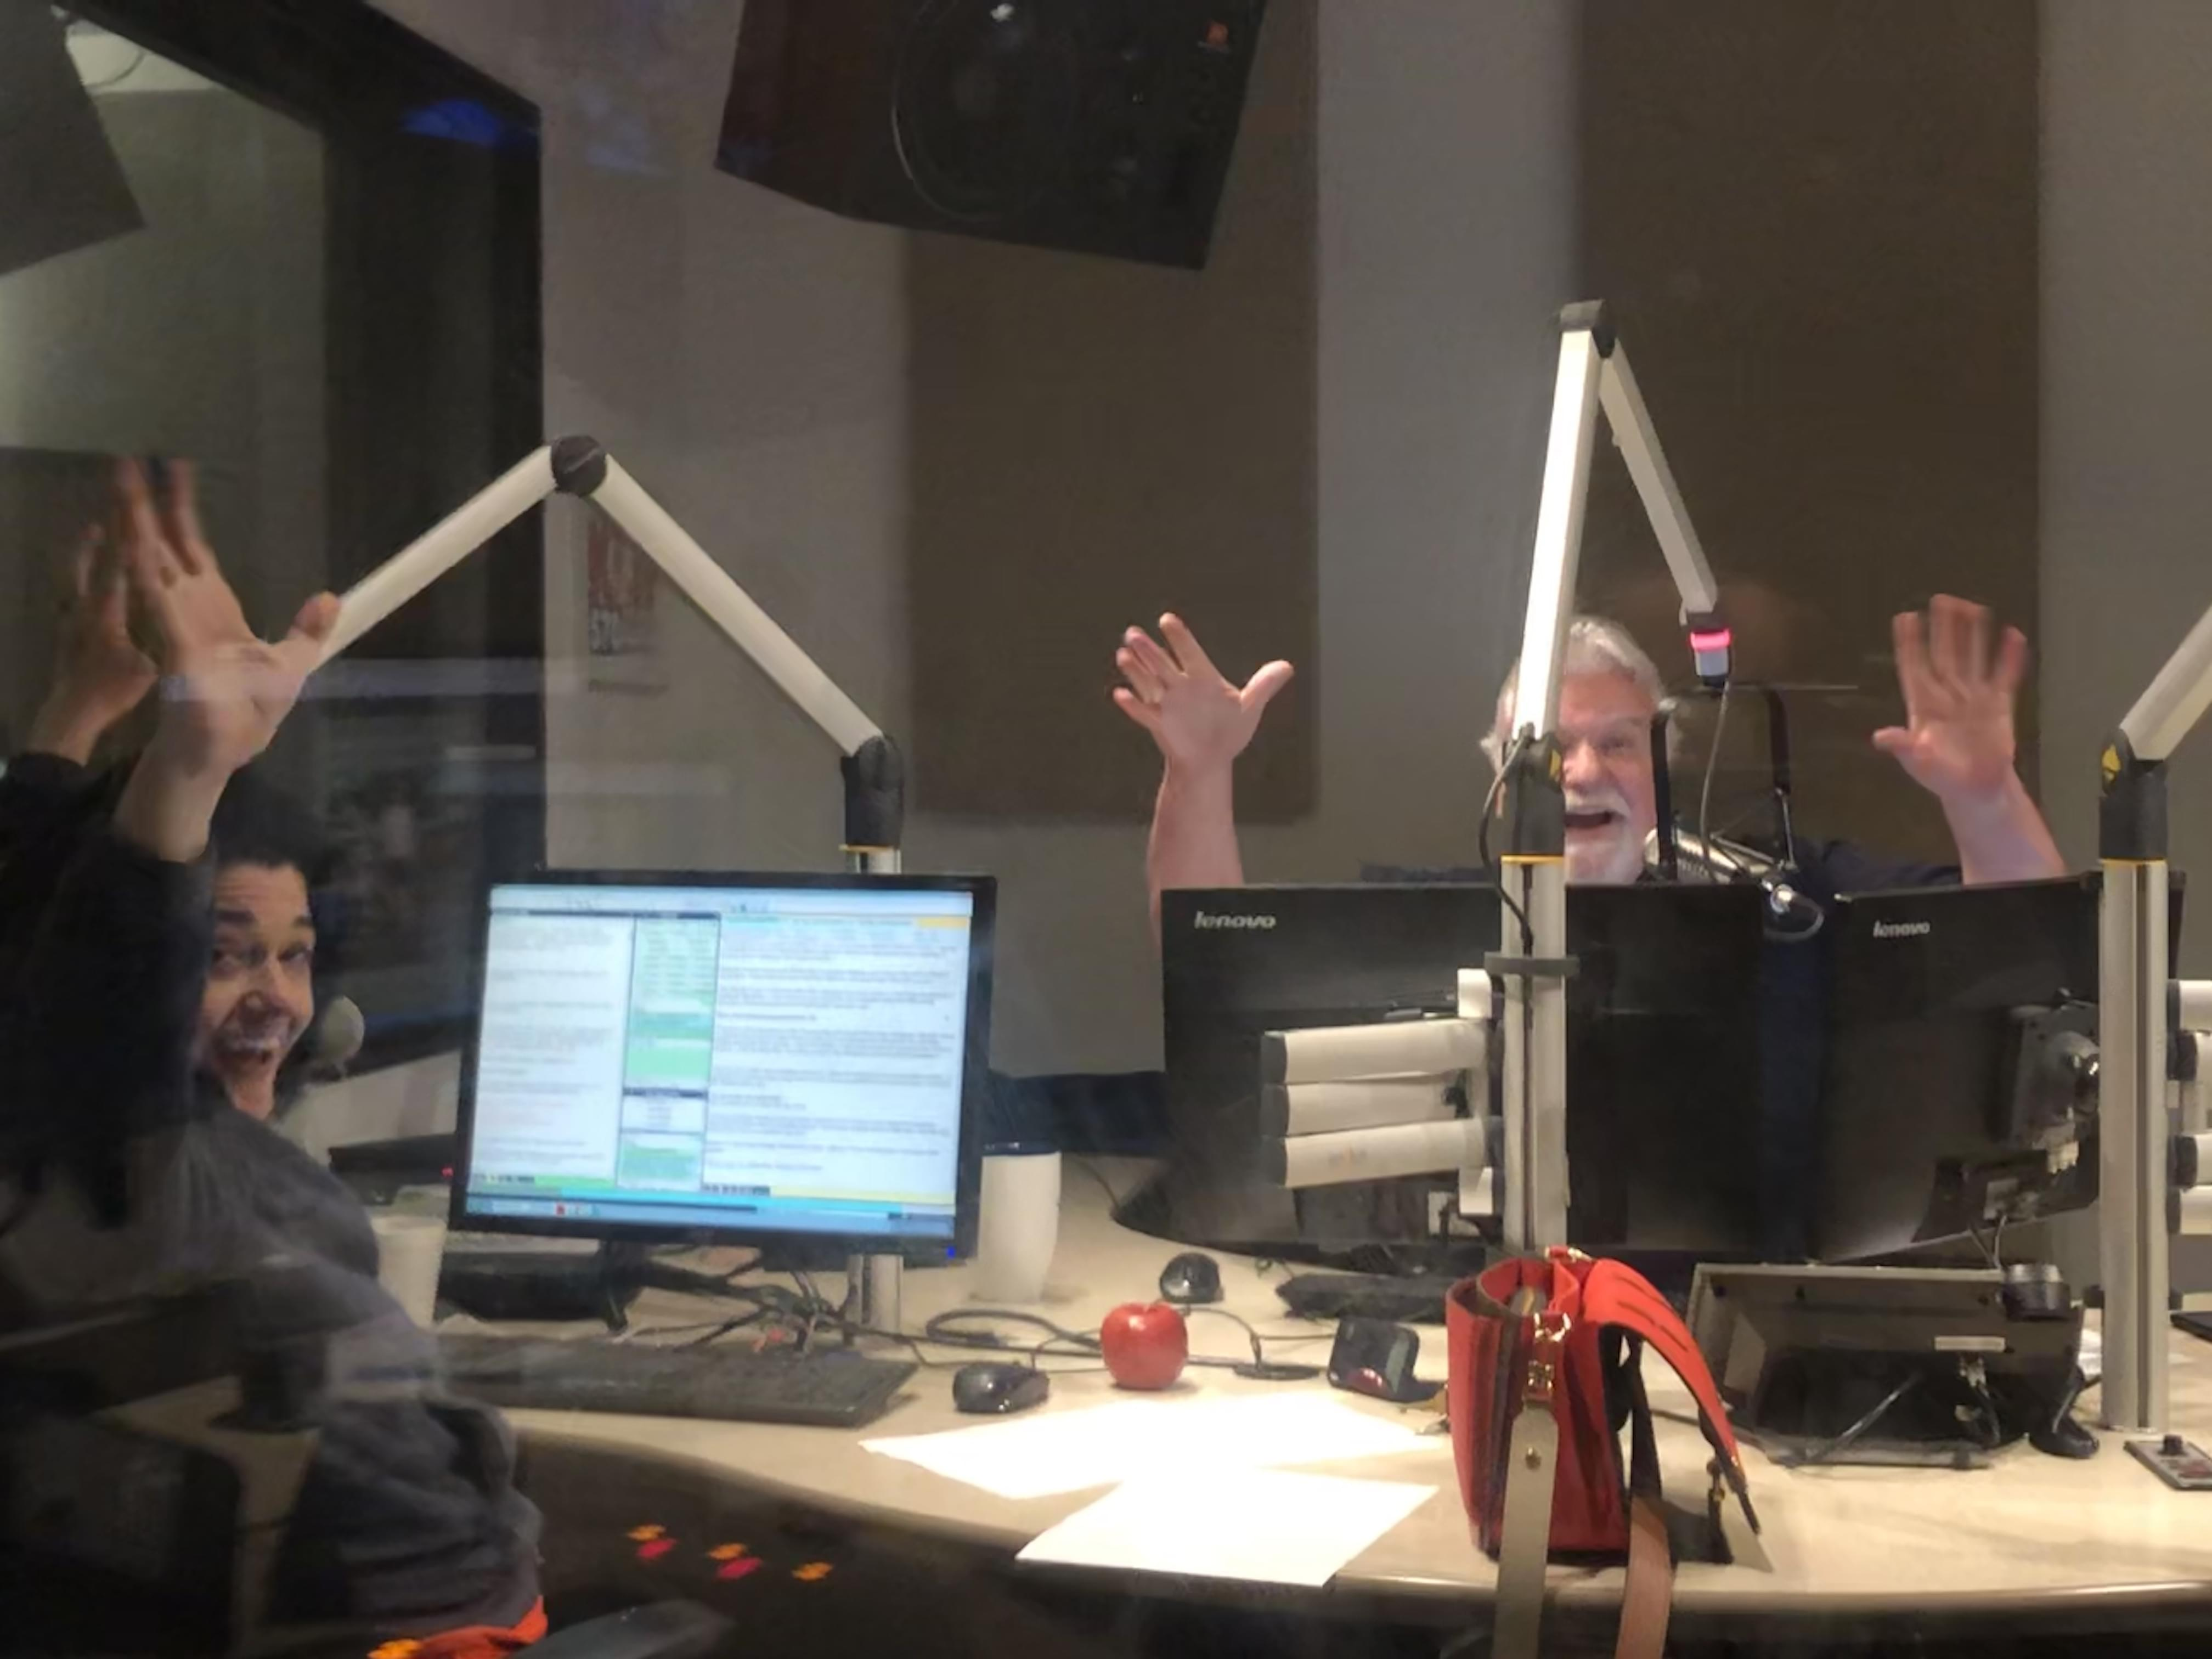 KLIF Morning News: A College Bans Clapping, and an Update on Impeachment and the Greenville Shooting